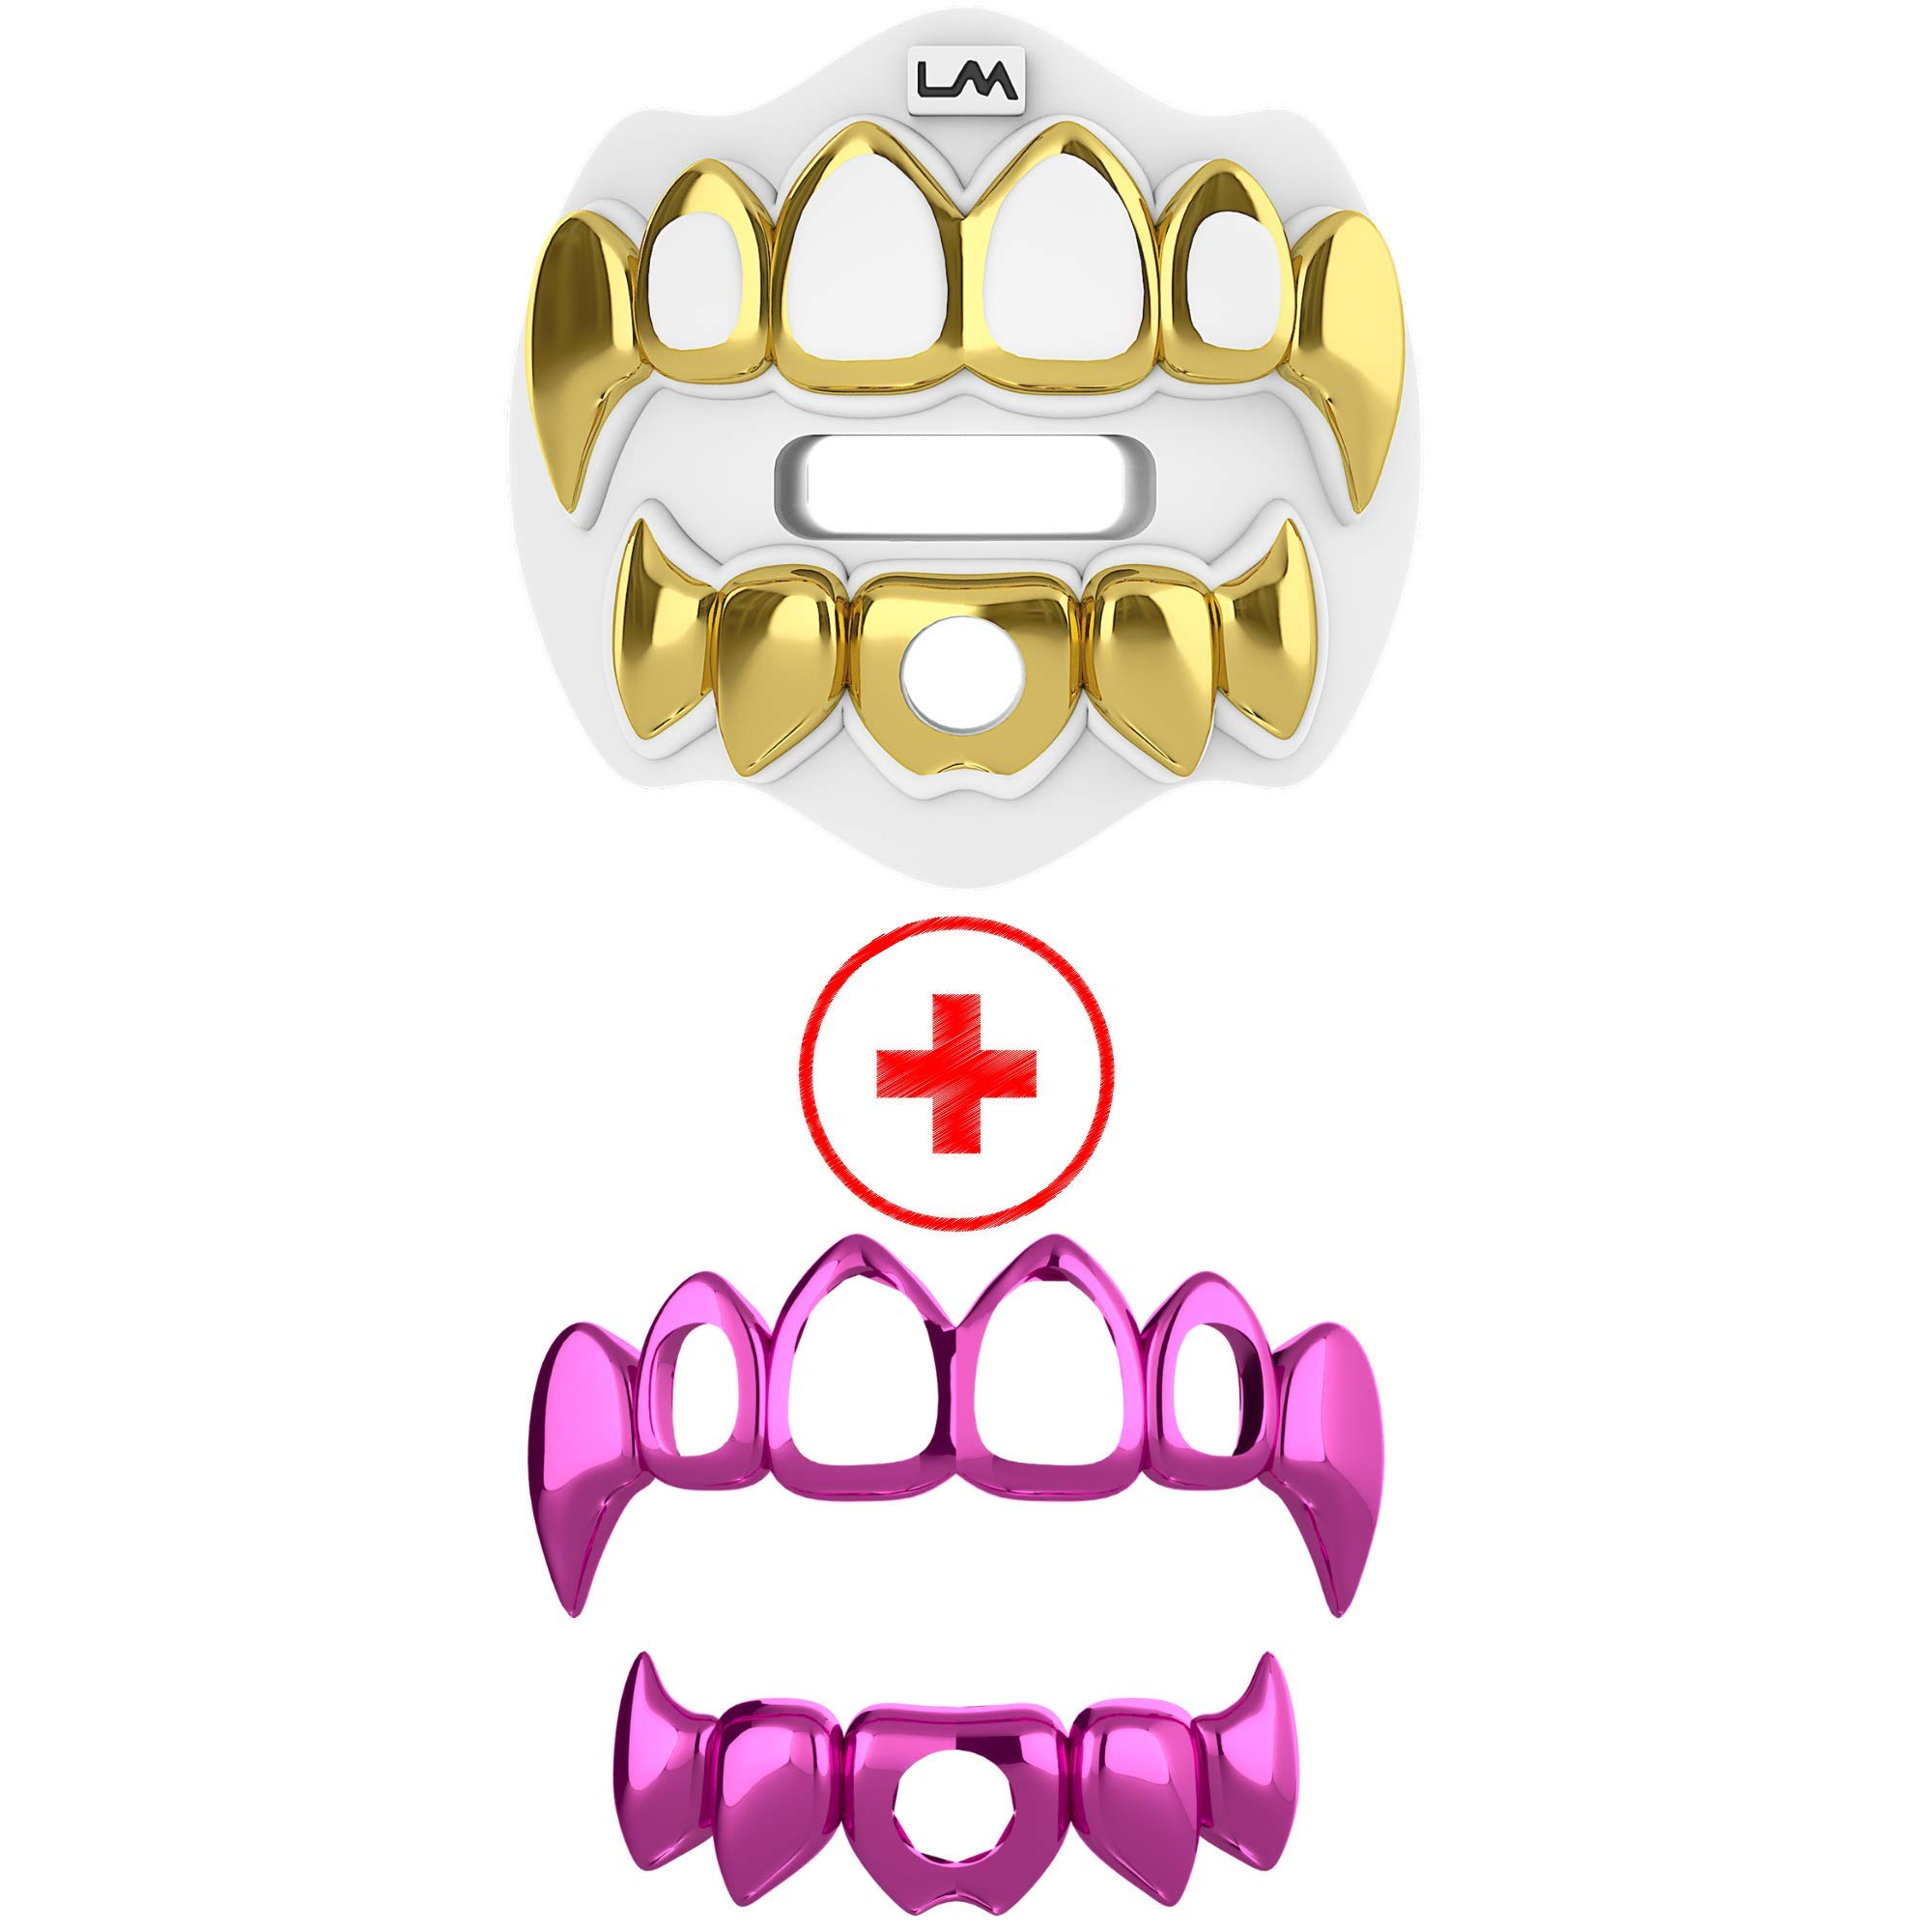 Loudmouth Football Mouth Guard | 3D Chrome Grillz Adult & Youth Mouth Guard | Mouth Piece for Sports | Maximum Air Flow Mouth Guards | Lip and Teeth Protector (3D Grillz - Chrome White/Gold + Pink) by Loud Mouth